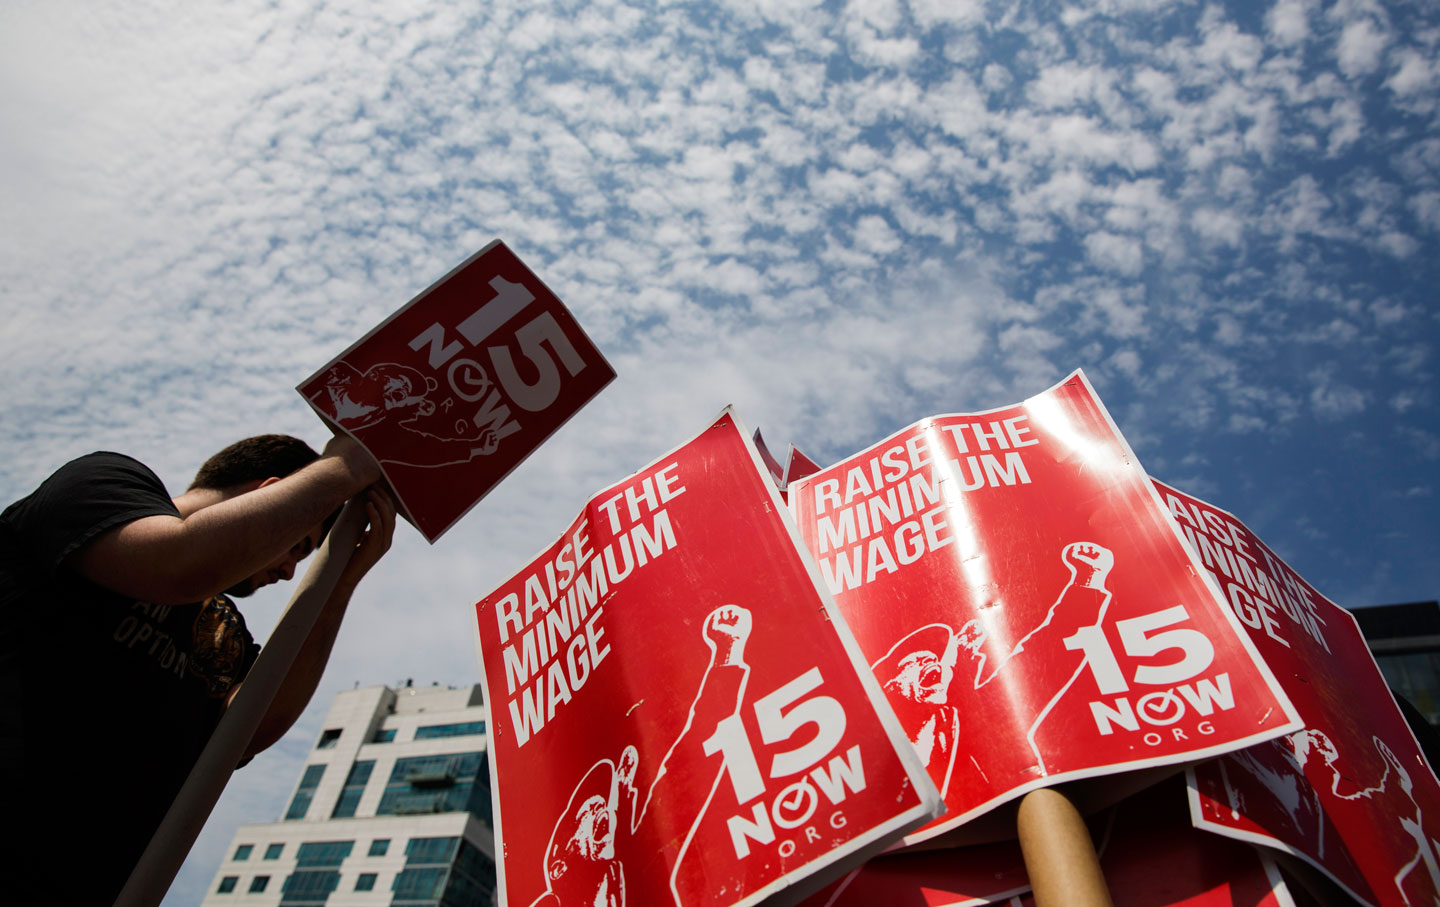 New York Fast-Food Workers Win Their Fight for $15